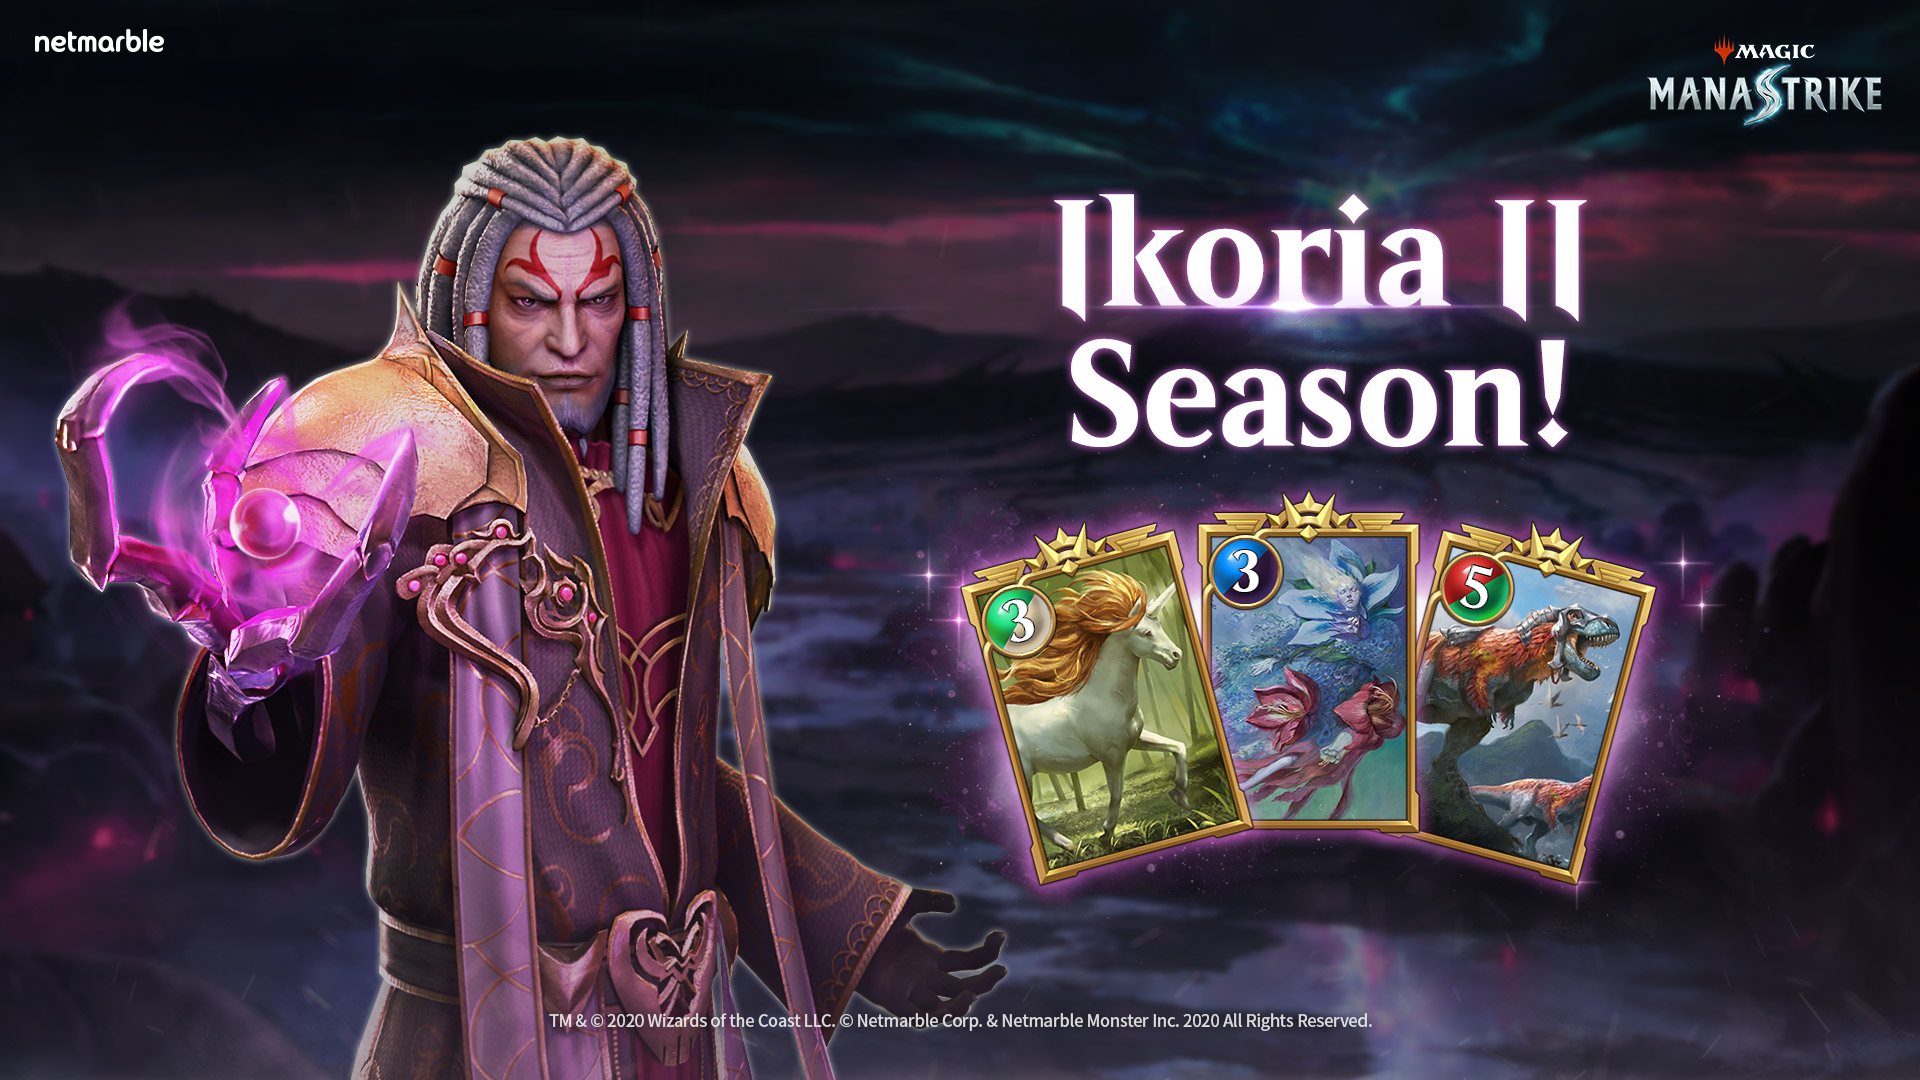 MAGIC: MANASTRIKE UNVEILS IKORIA II SEASON IN BRAND-NEW UPDATE